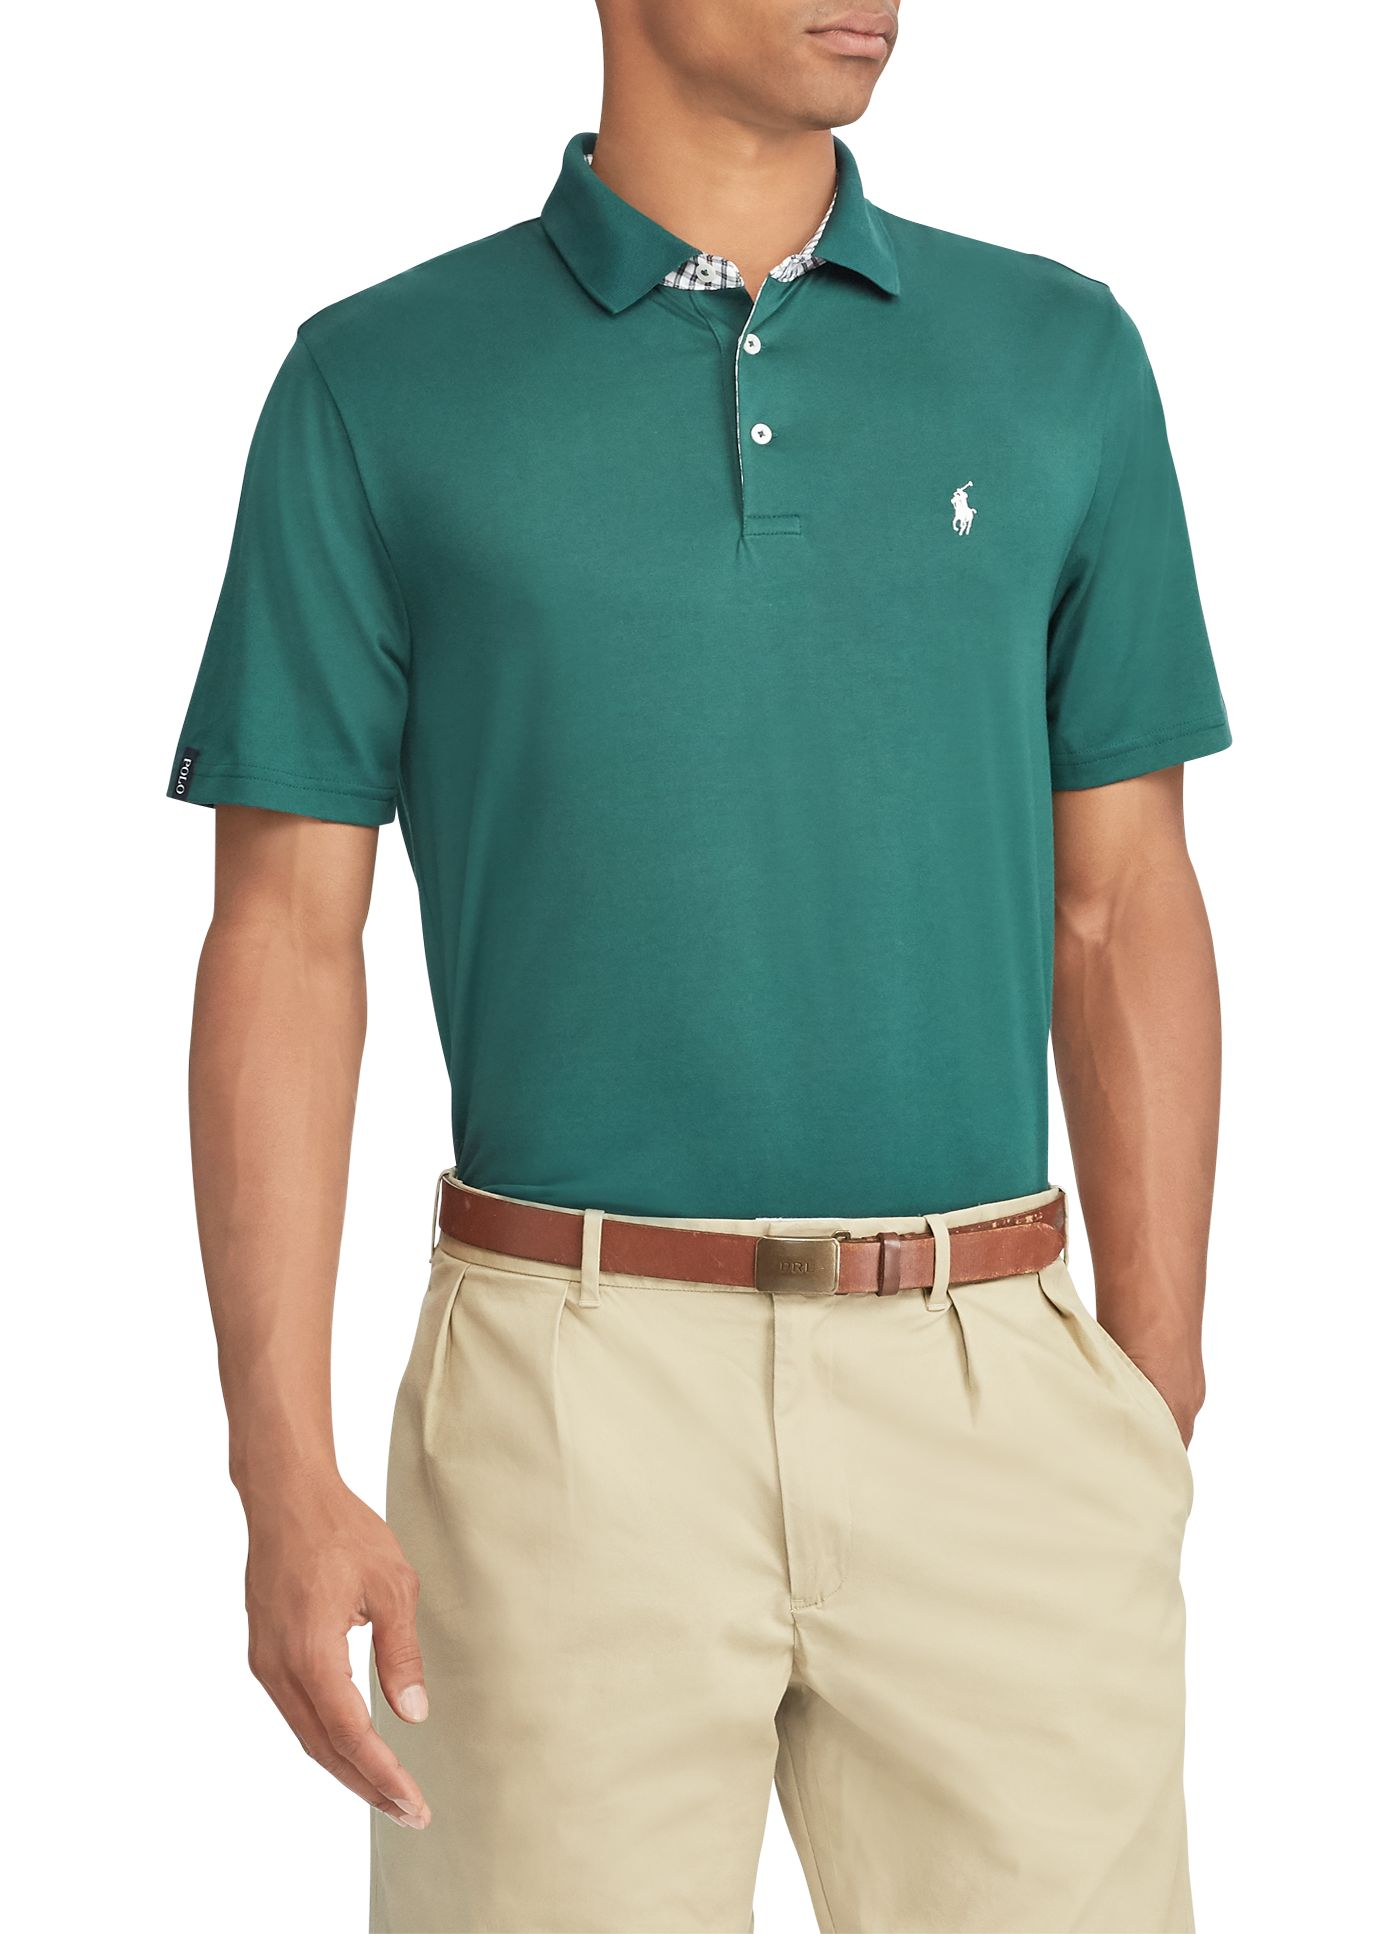 Polo Golf Men's Performance Lisle Golf Polo